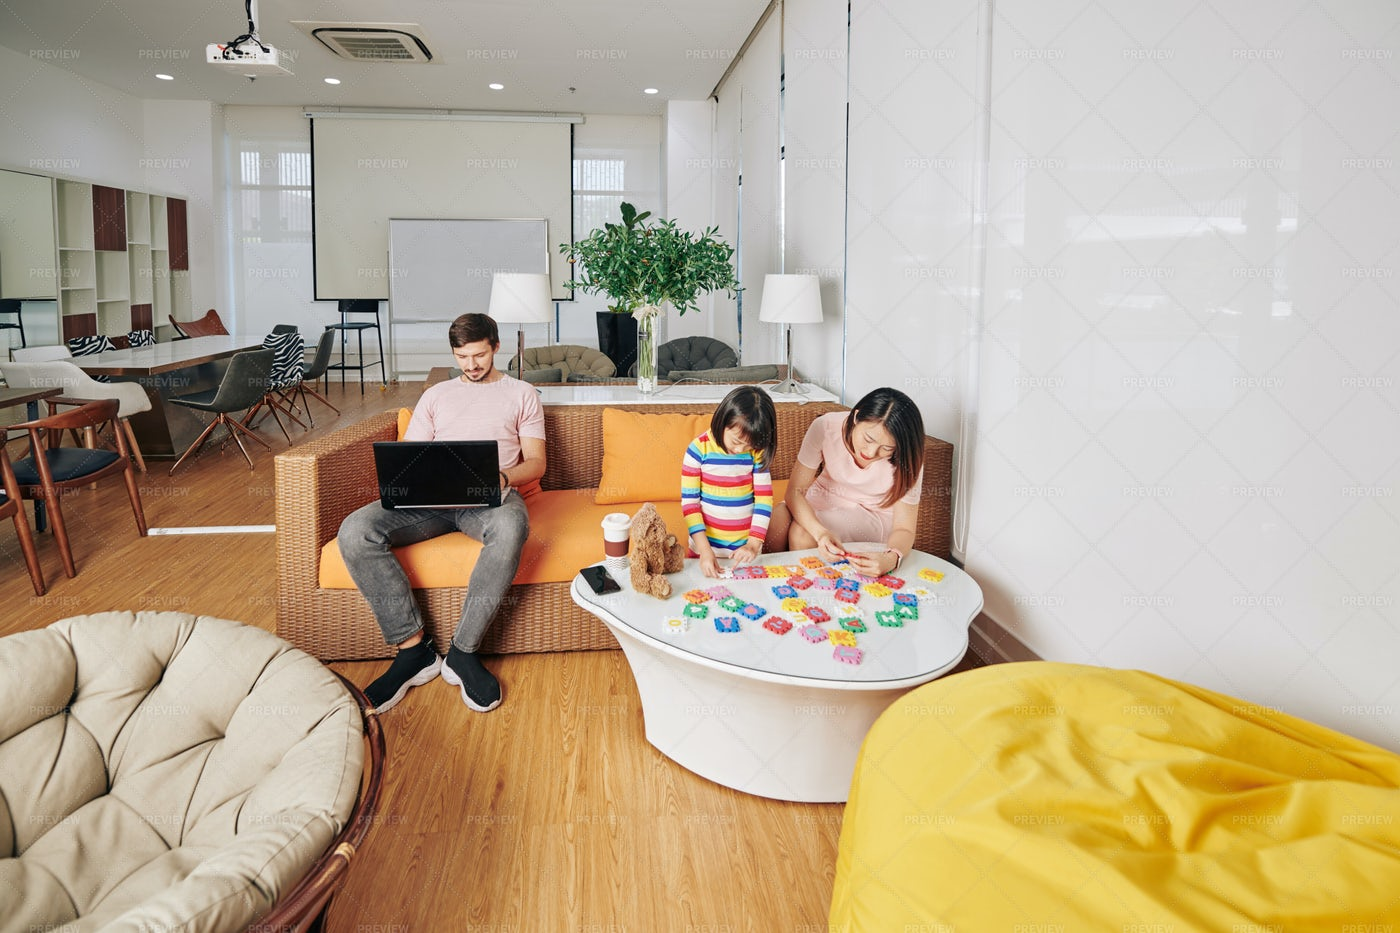 Family Spending Time At Home: Stock Photos